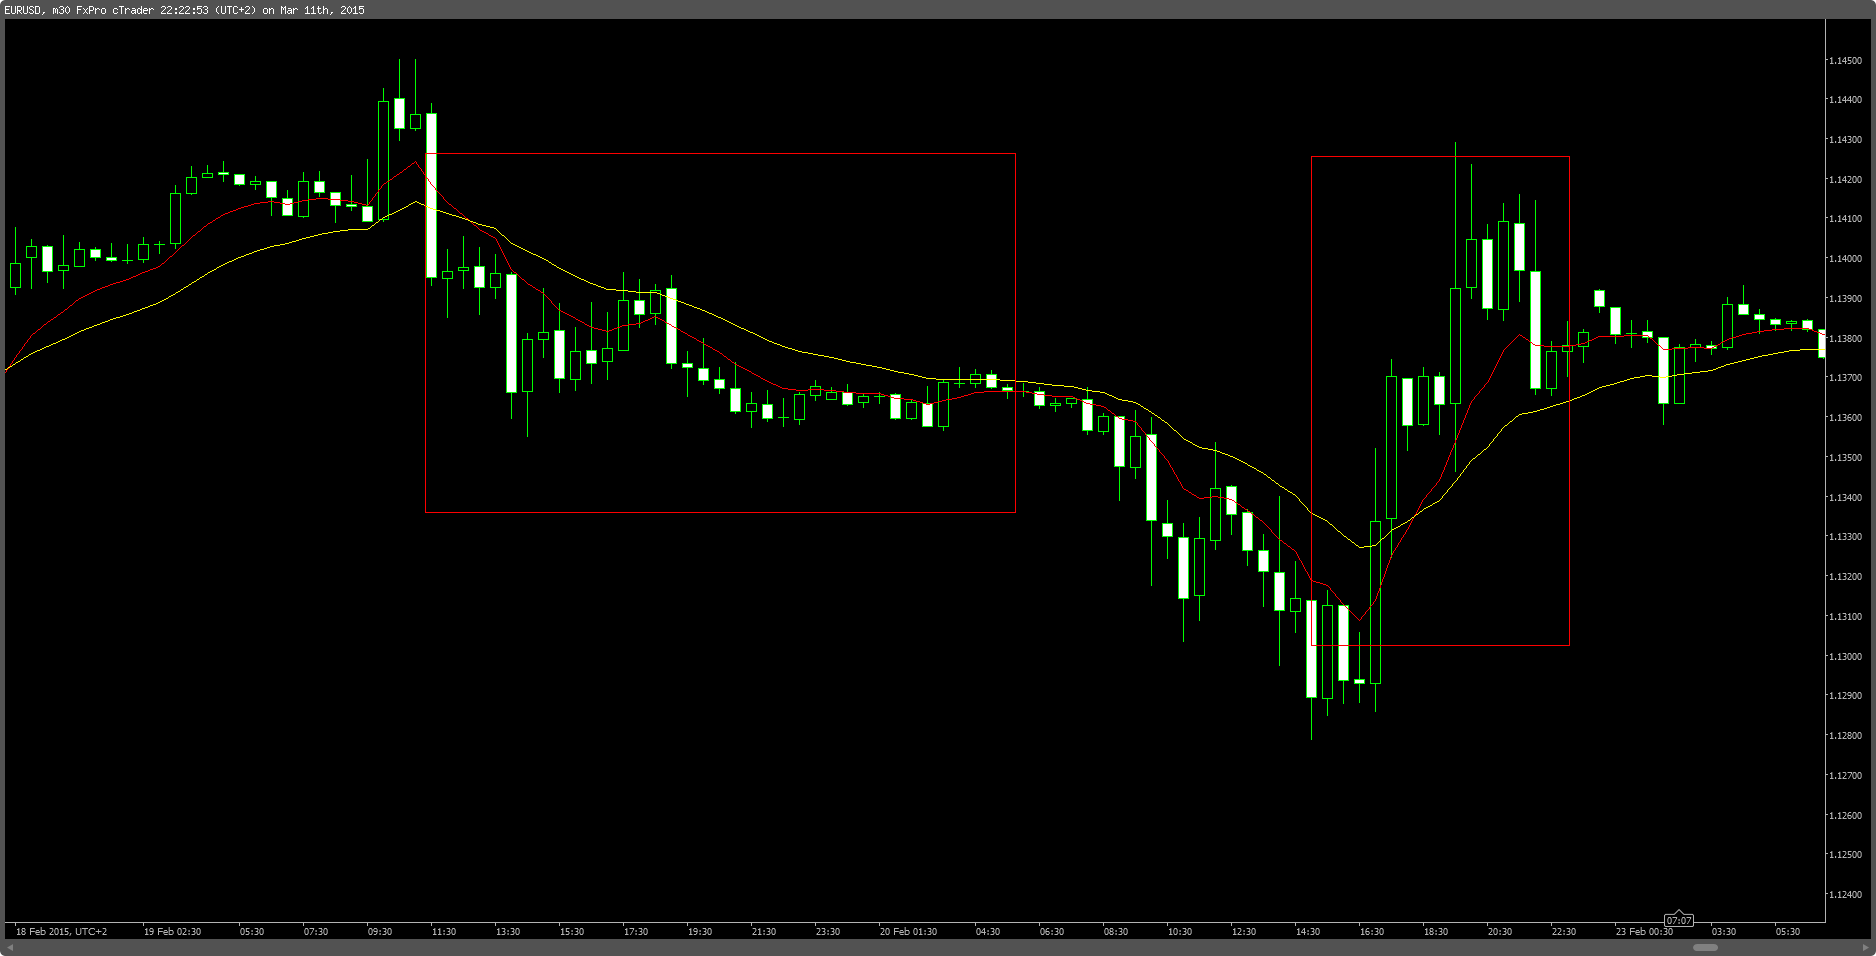 strategies_cT_cs_8038541_EURUSD_2015-03-11_22-22-51.png